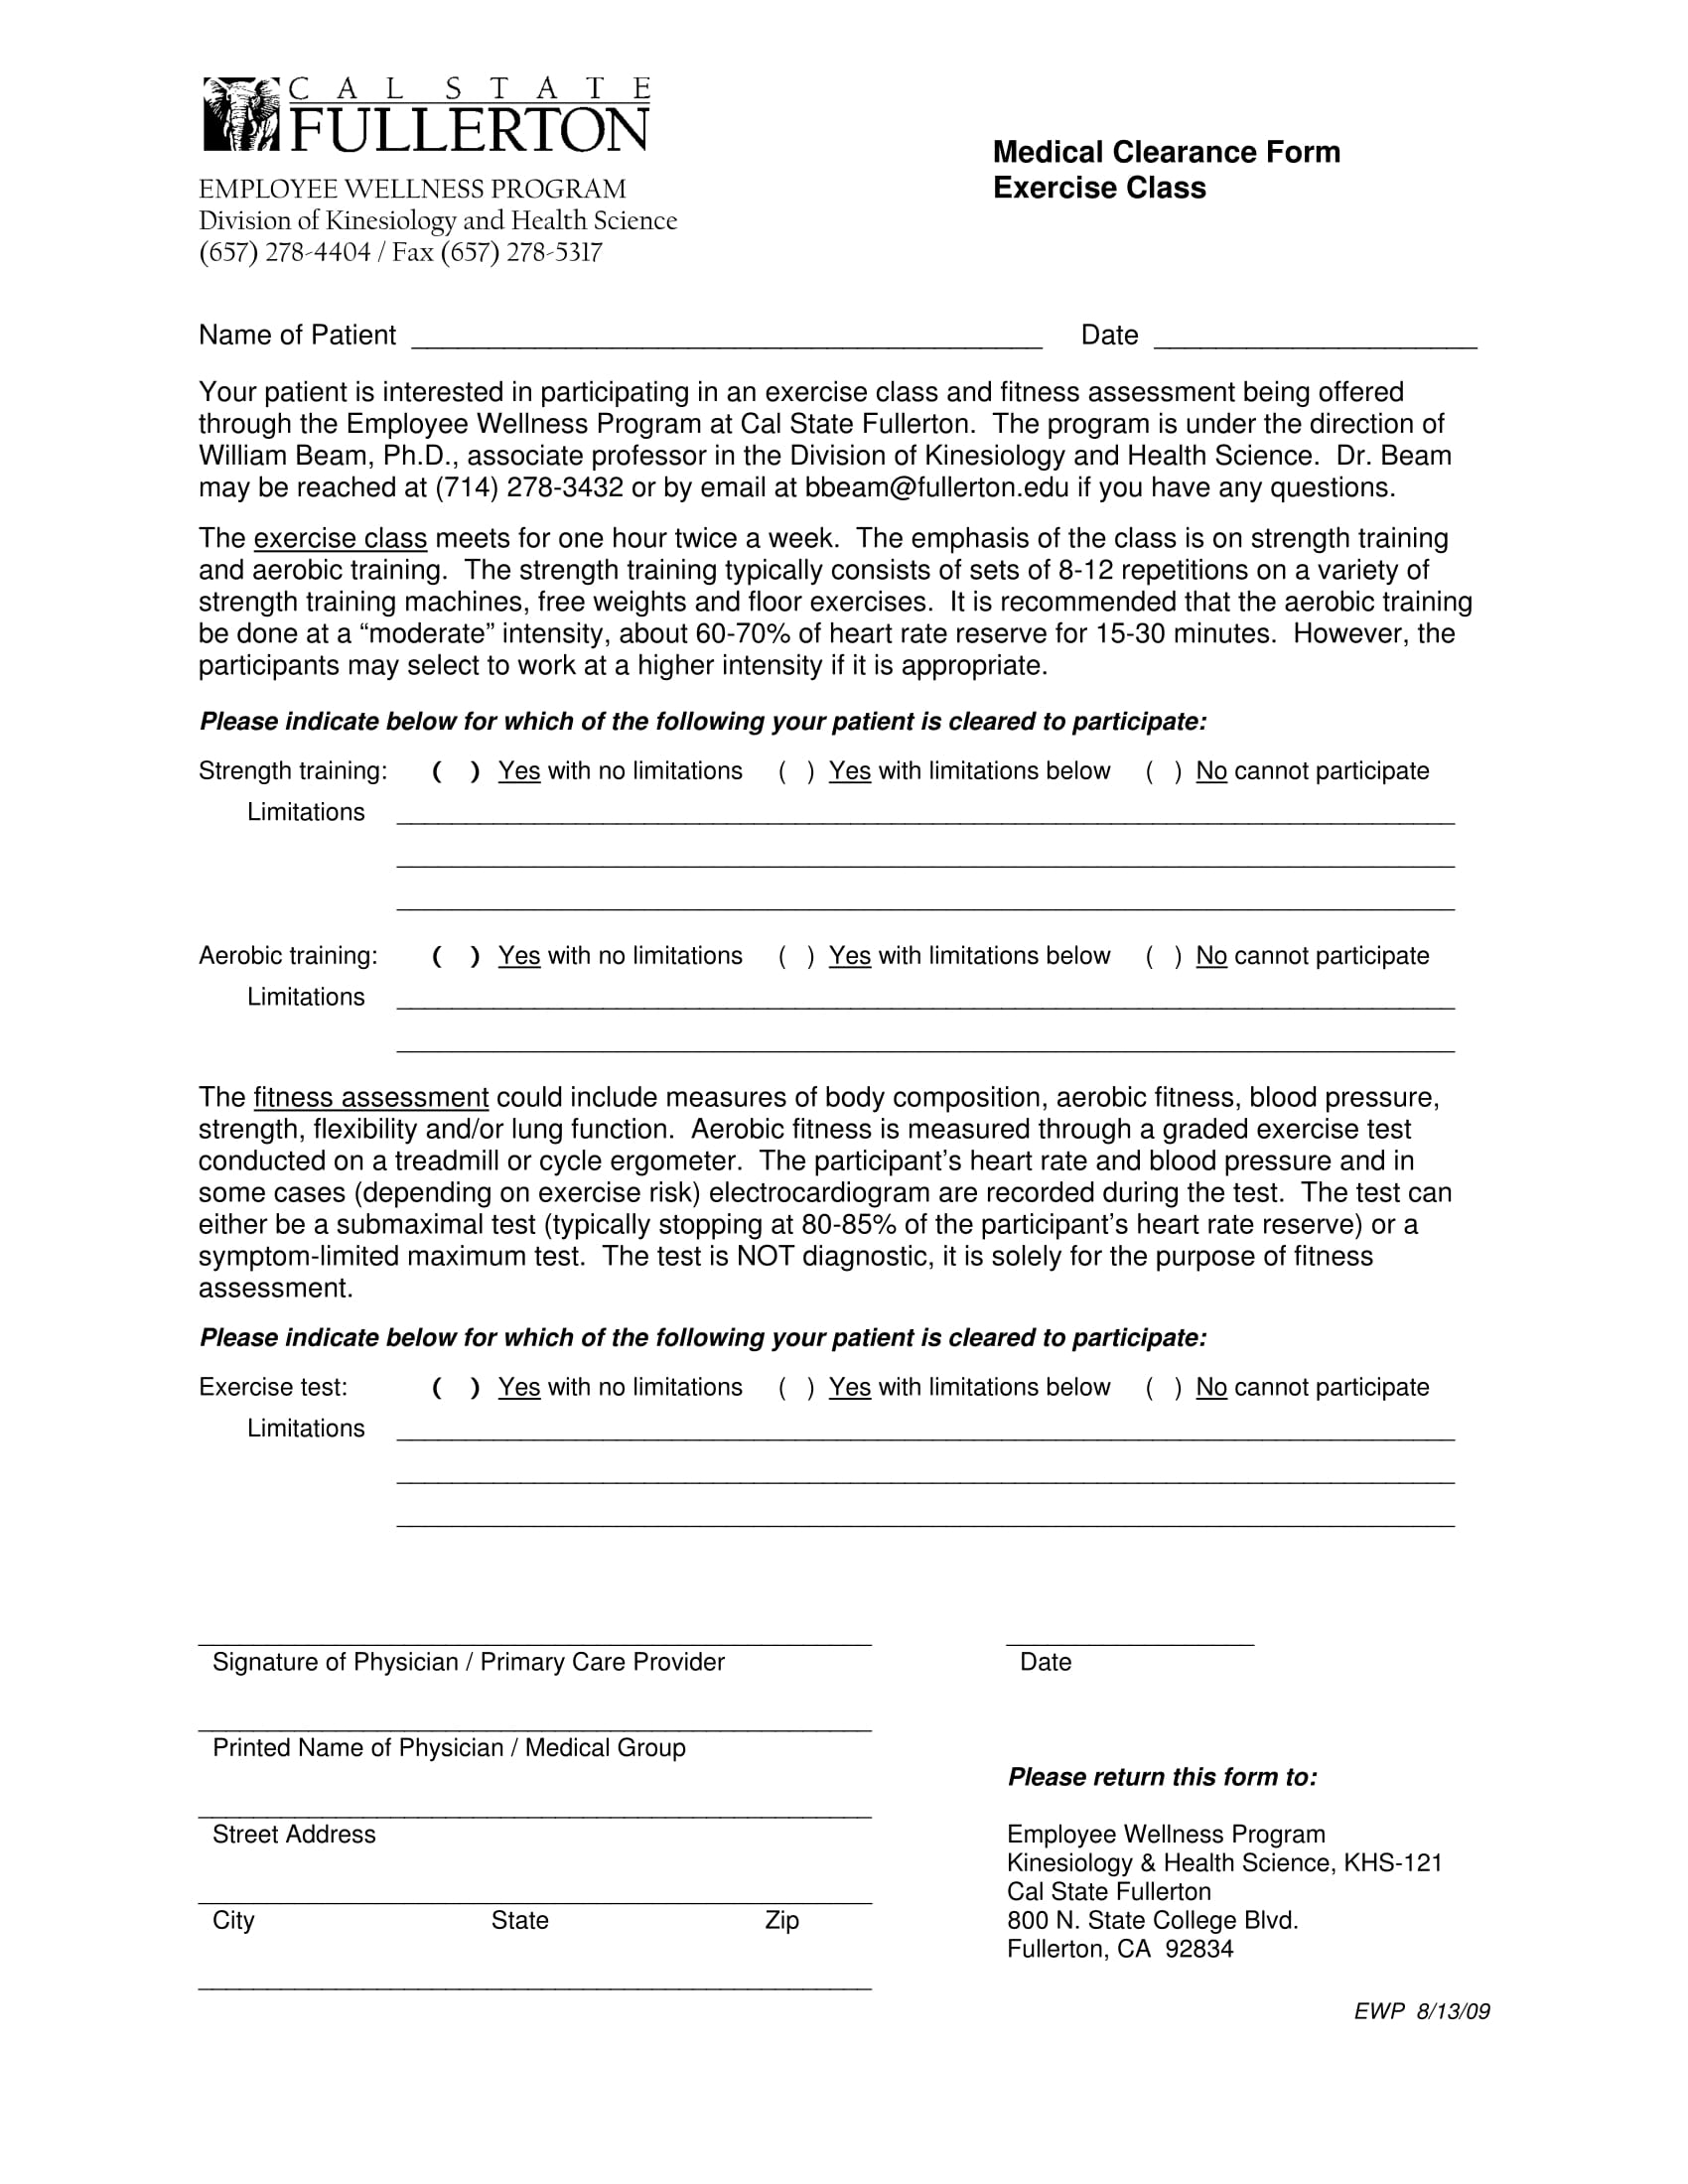 exercise class medical clearance form 1